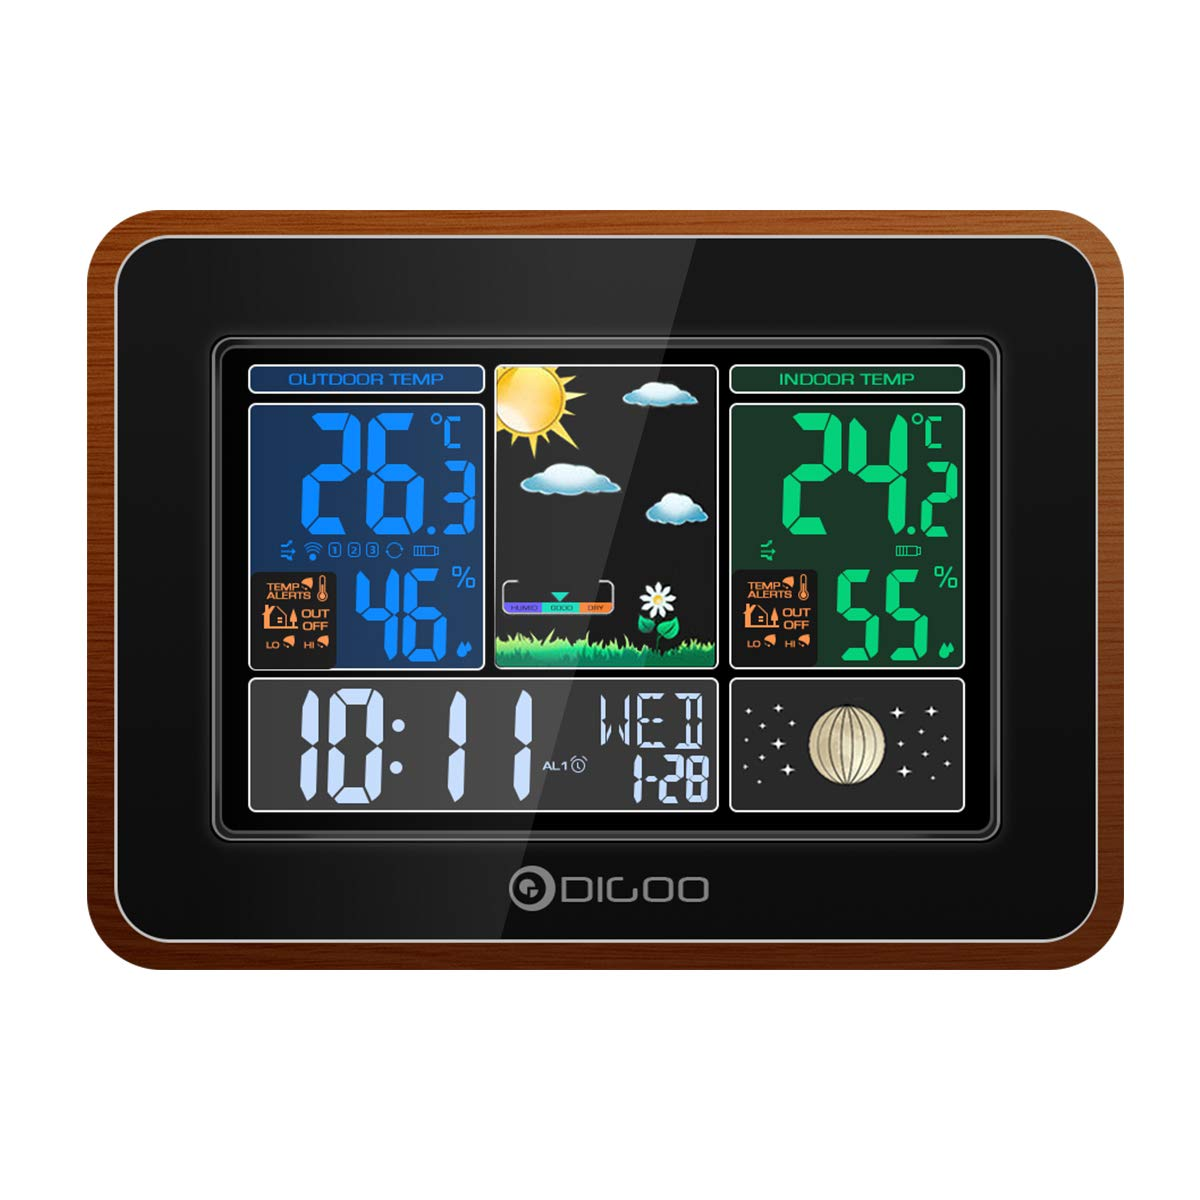 DIGOO DG-TH8878 Wood Grain Color Wireless Weather Station, Indoor Outdoor Hygrometer Thermometer Weather Forecast with USB Charge Port Output, Voice Control, Color Screen Display, Dual Alarm Clock by DIGOO